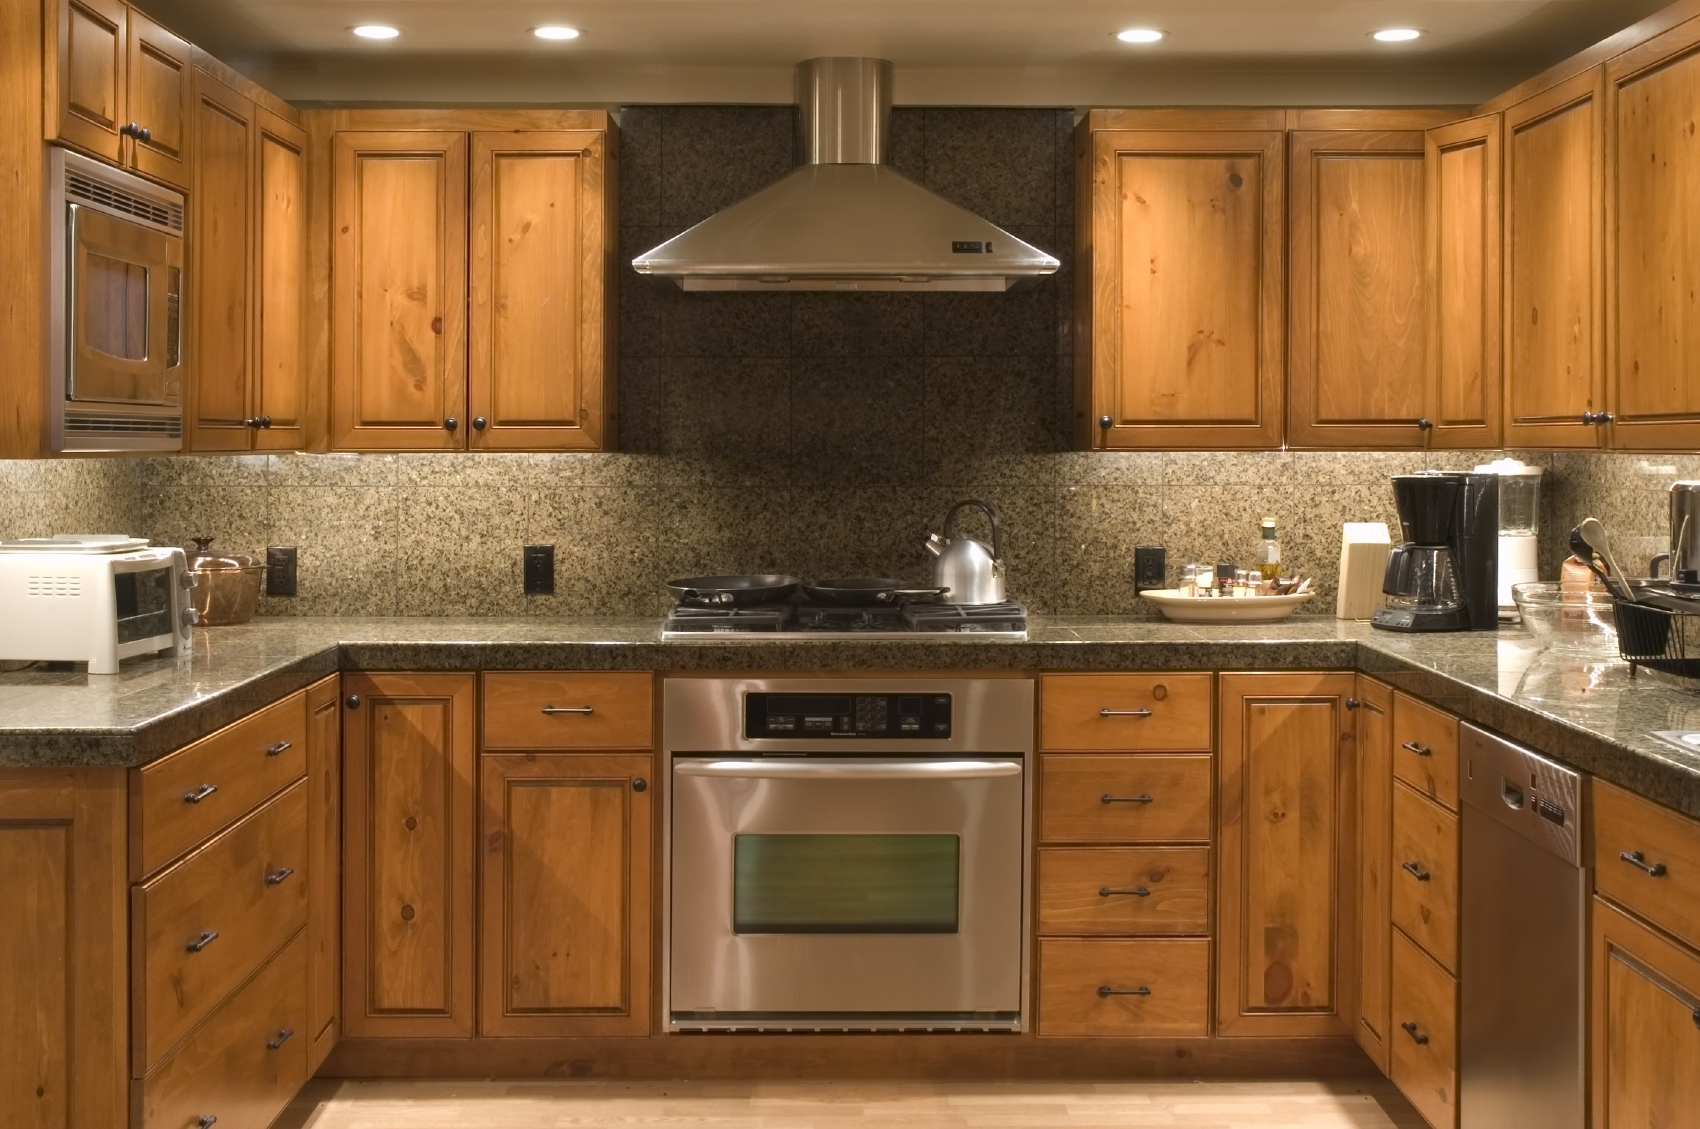 Are Frameless Cabinets A Good Choice?